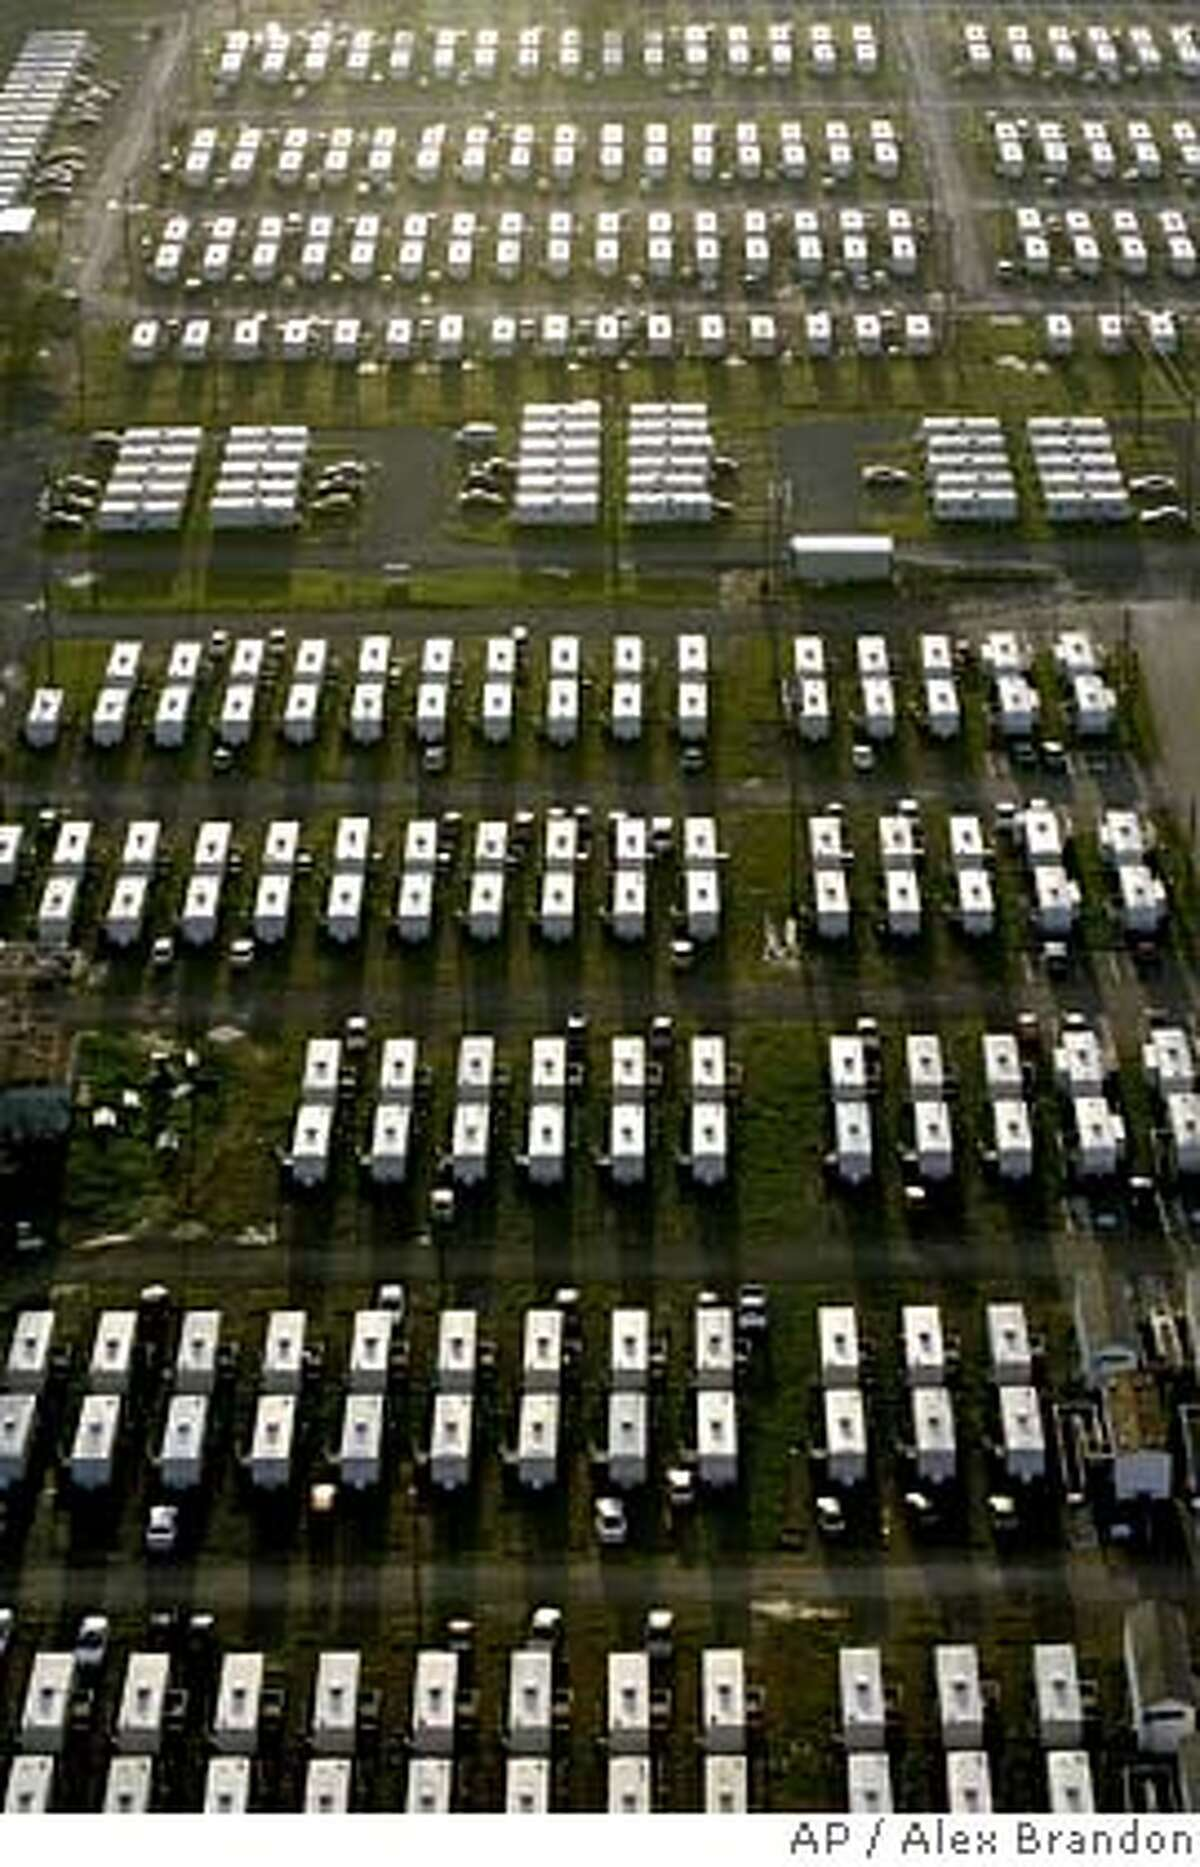 FEMA trailers that are being used for housing for University of New Orleans students and faculty are shown early Monday Morning in New Orleans, Monday, Aug. 28, 2006. Hurricane Katrina came ashore almost a year ago flooding much of the city. Members of Congress toured the city Monday and President Bush was headed for the region to see the state of recovery efforts one year after the city was ravaged by Hurricane Katrina. (AP Photo/Alex Brandon)